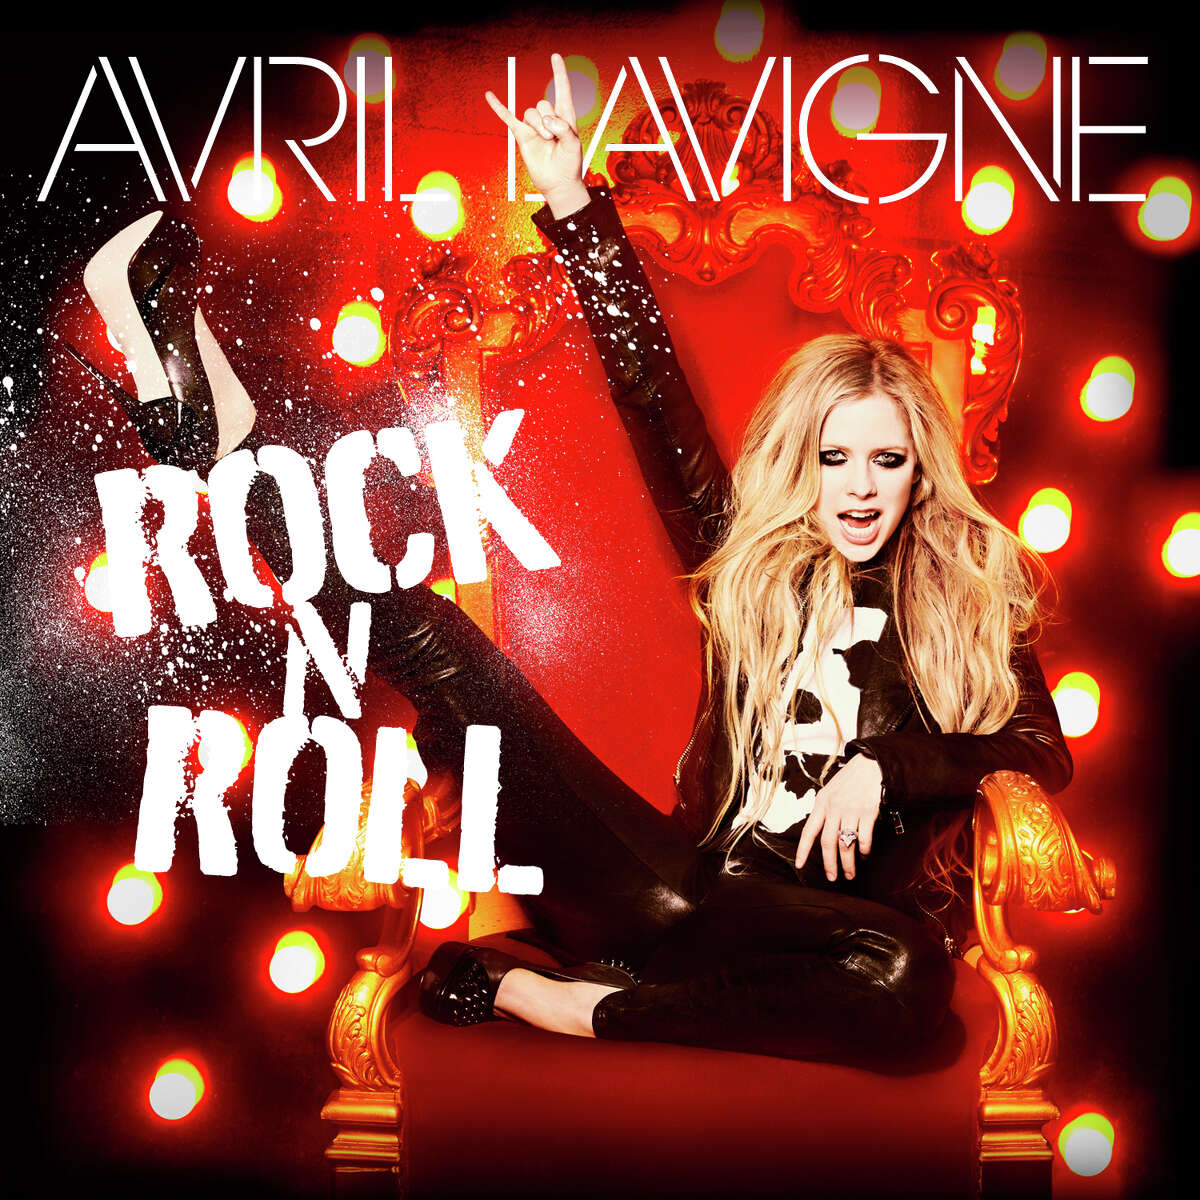 Avril Lavigne brings her pop-rock hits to Foxwoods Resort Casino on Saturday, June 28.